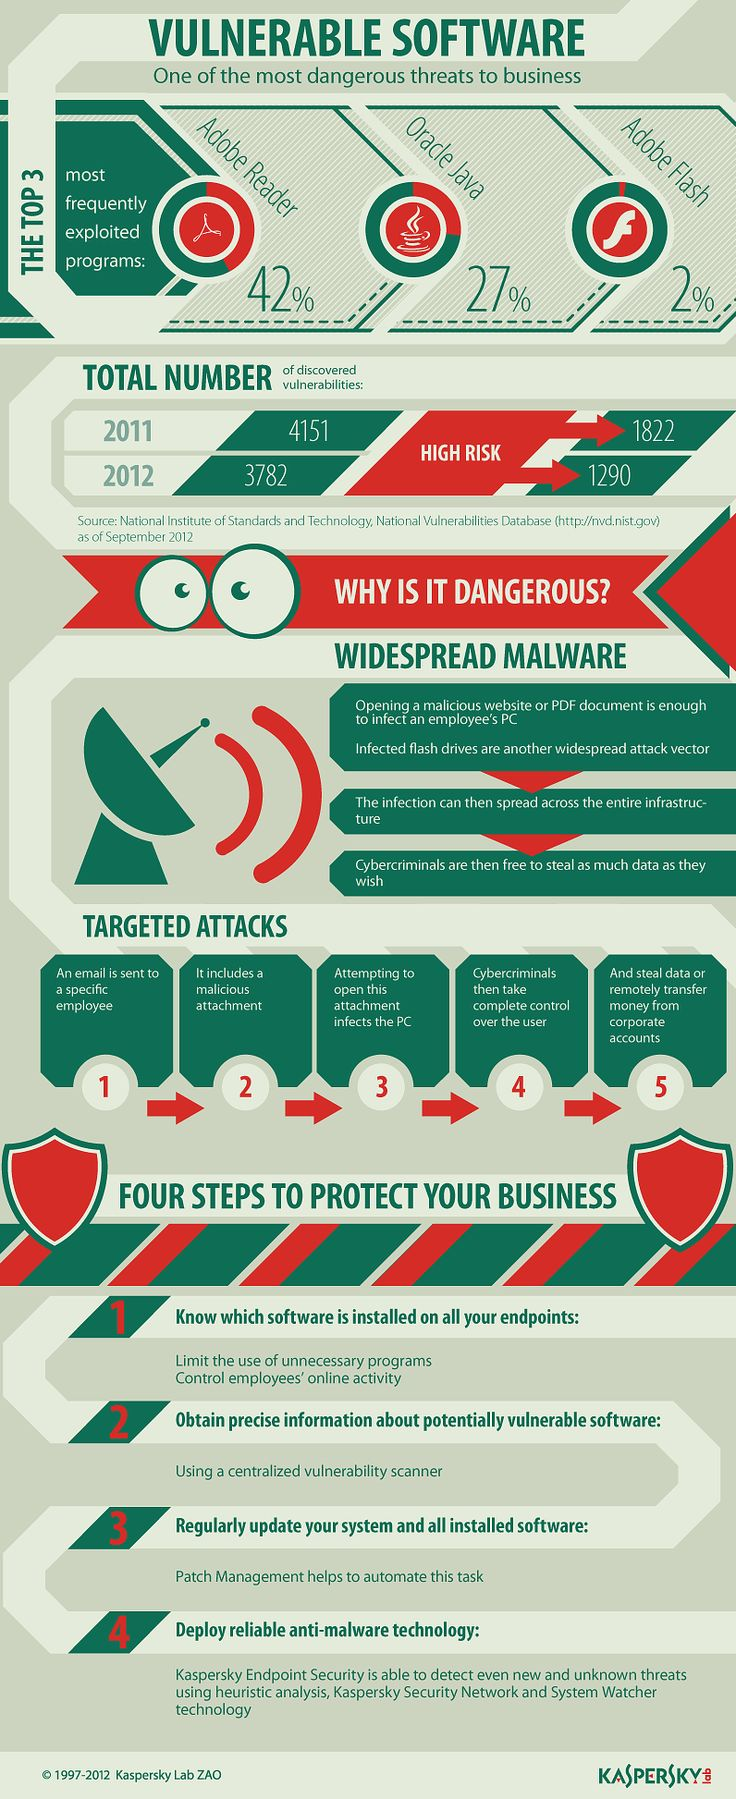 Kaspersky: #Infographic Vulnerable software - #security #malware